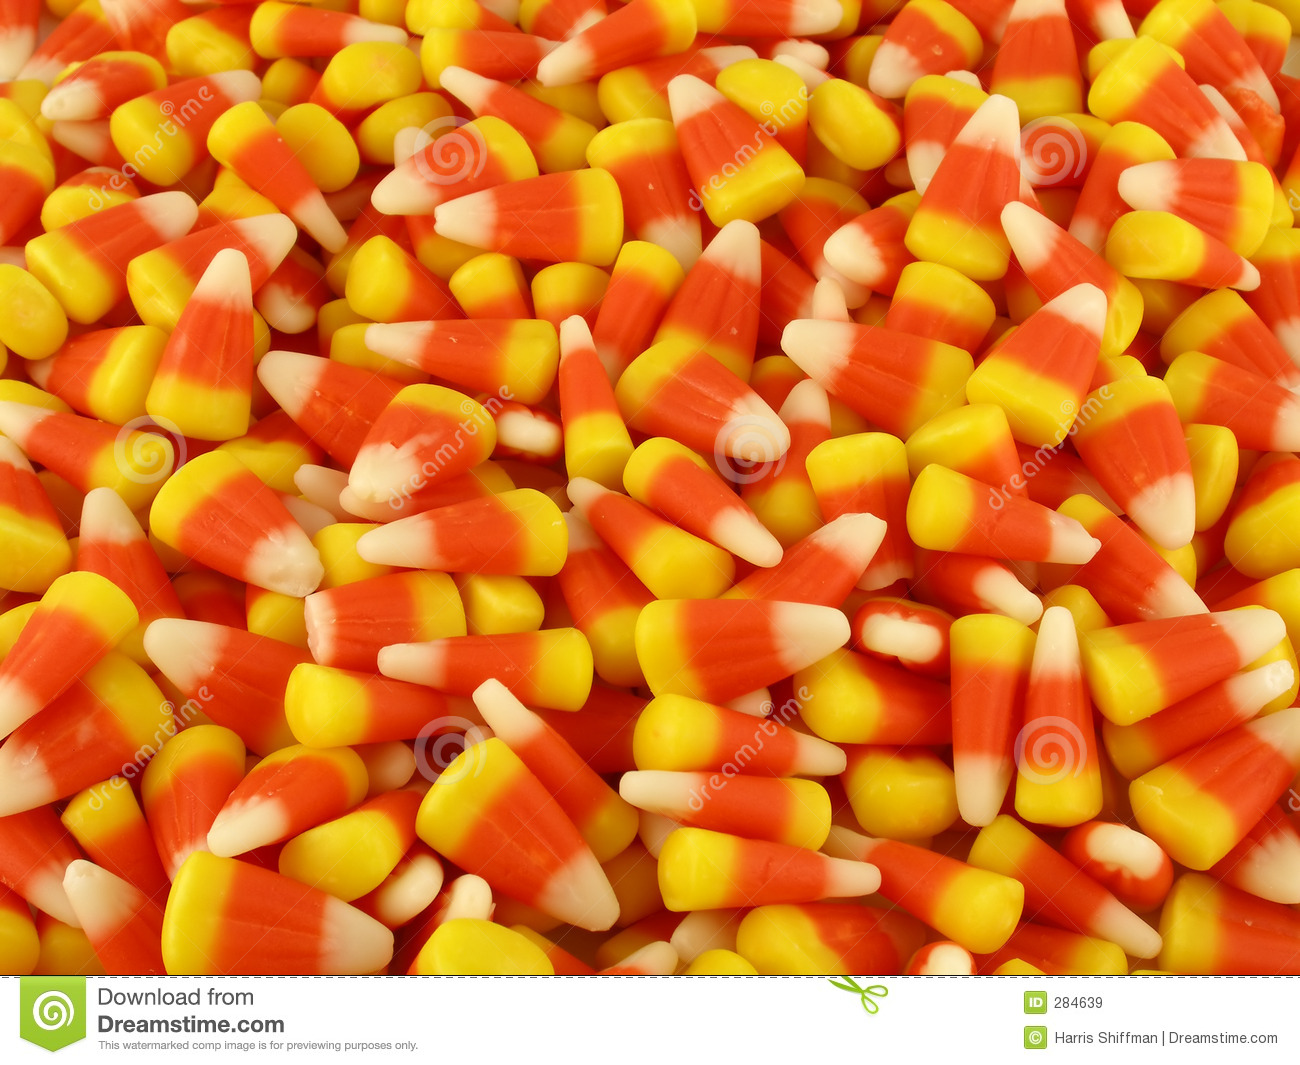 how to make candy corn at home